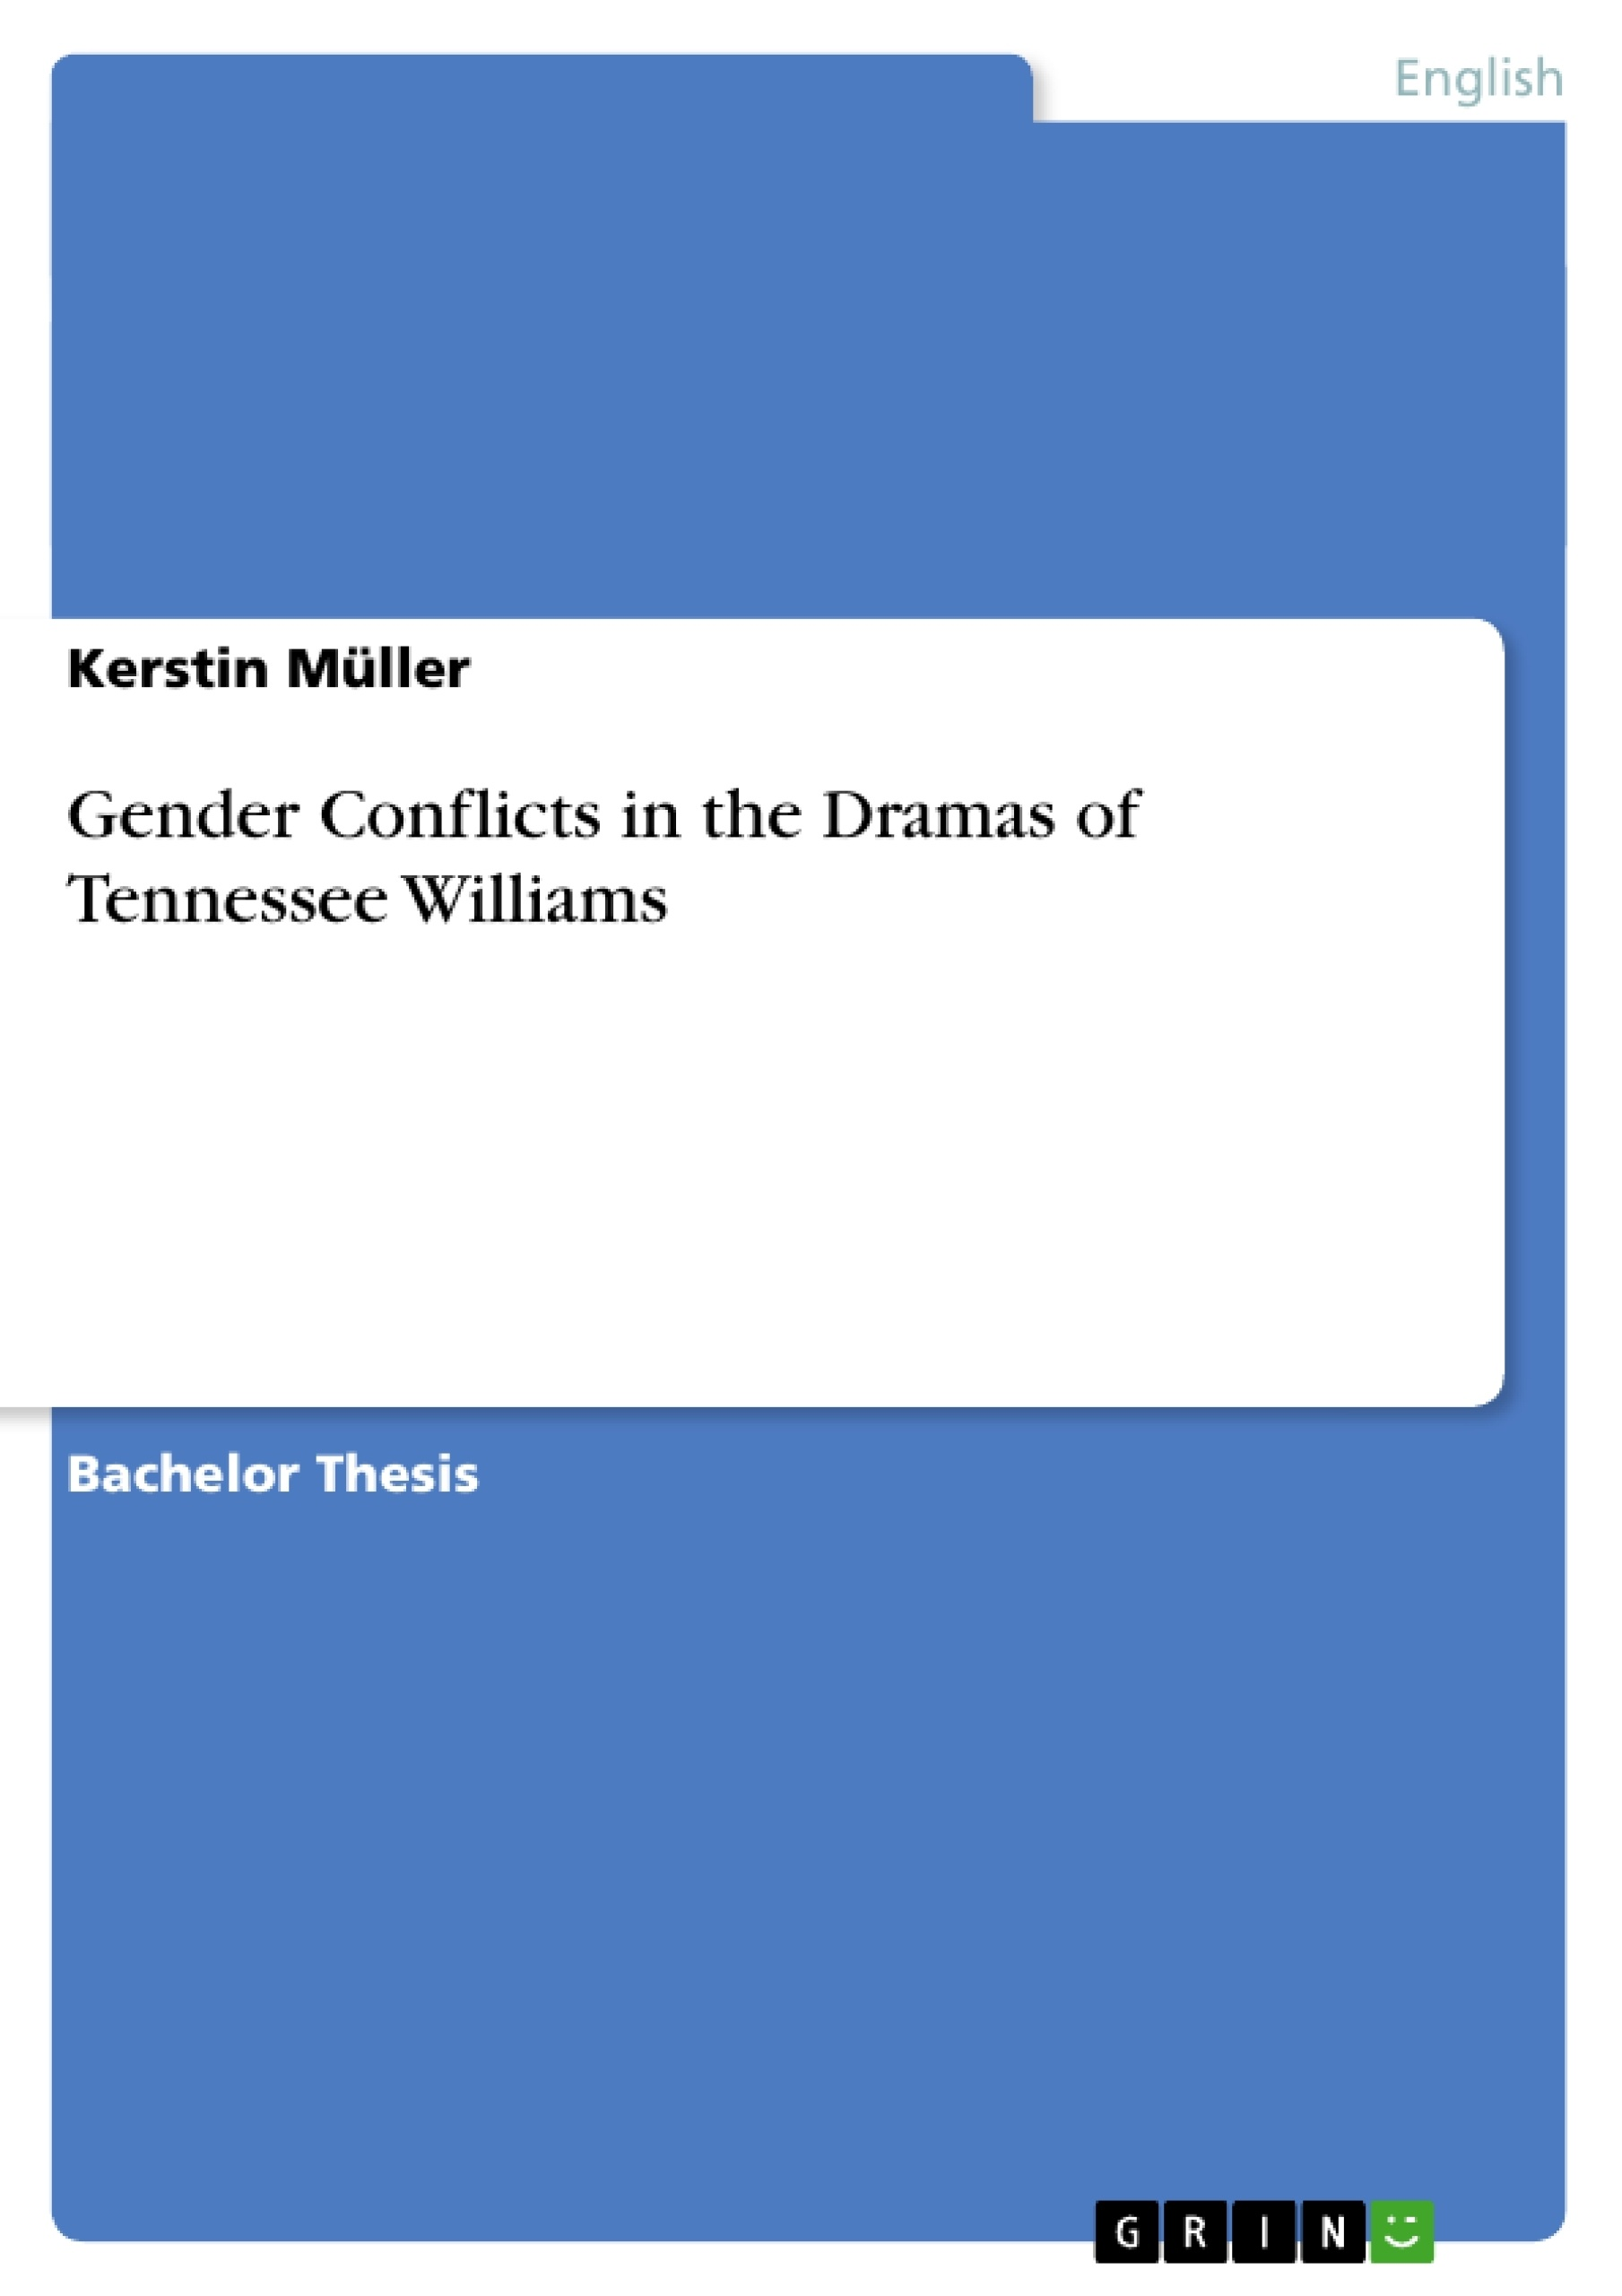 gender conflicts in the dramas of tennessee williams publish gender conflicts in the dramas of tennessee williams publish your master s thesis bachelor s thesis essay or term paper